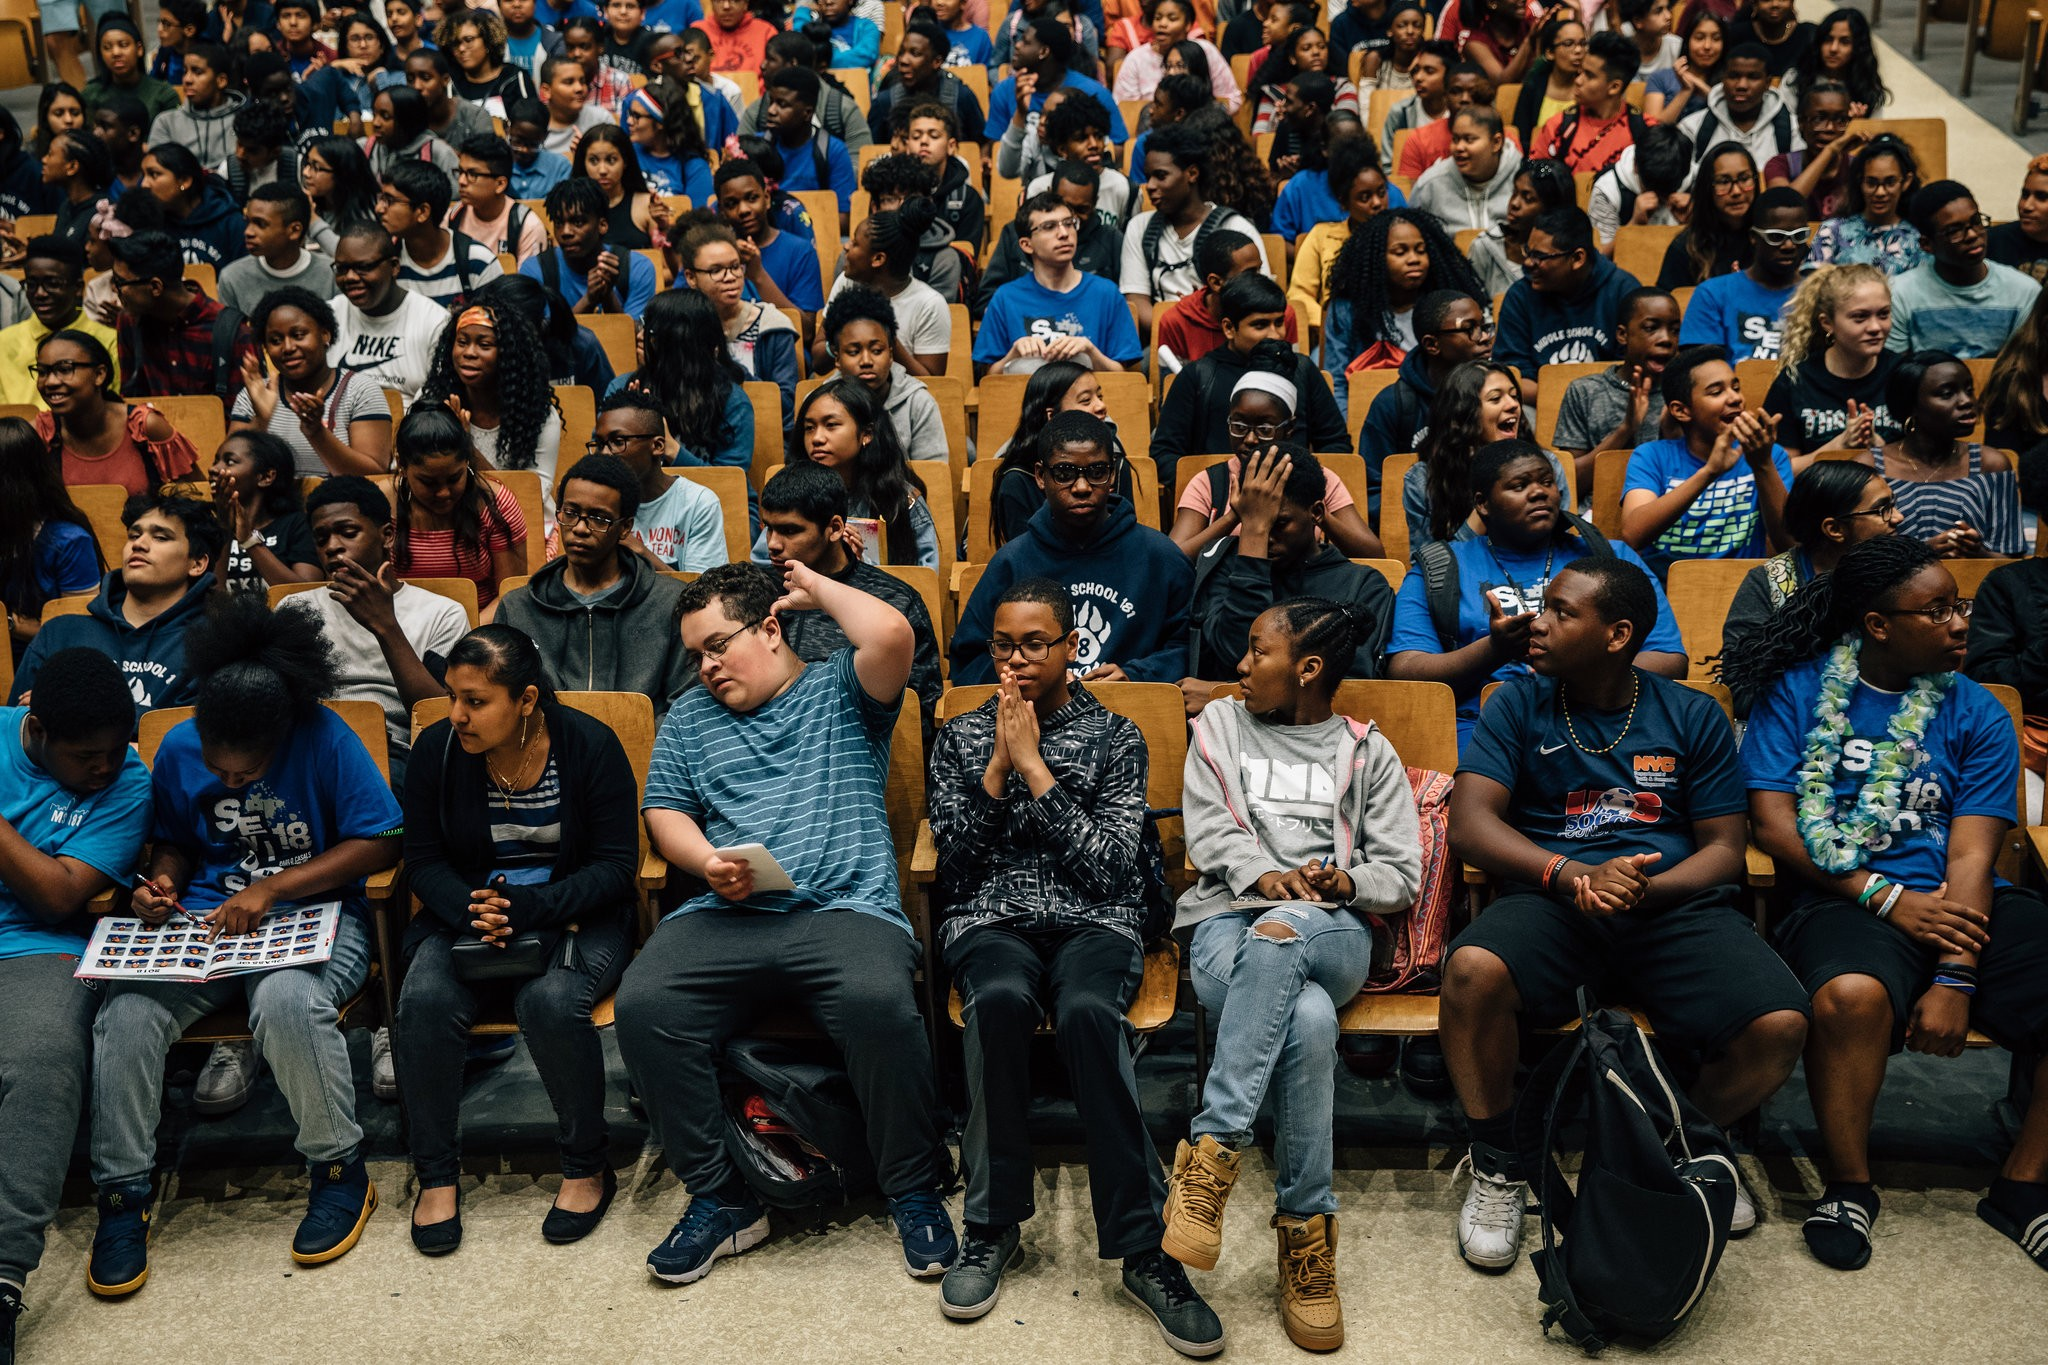 Photo of students from The New York Times